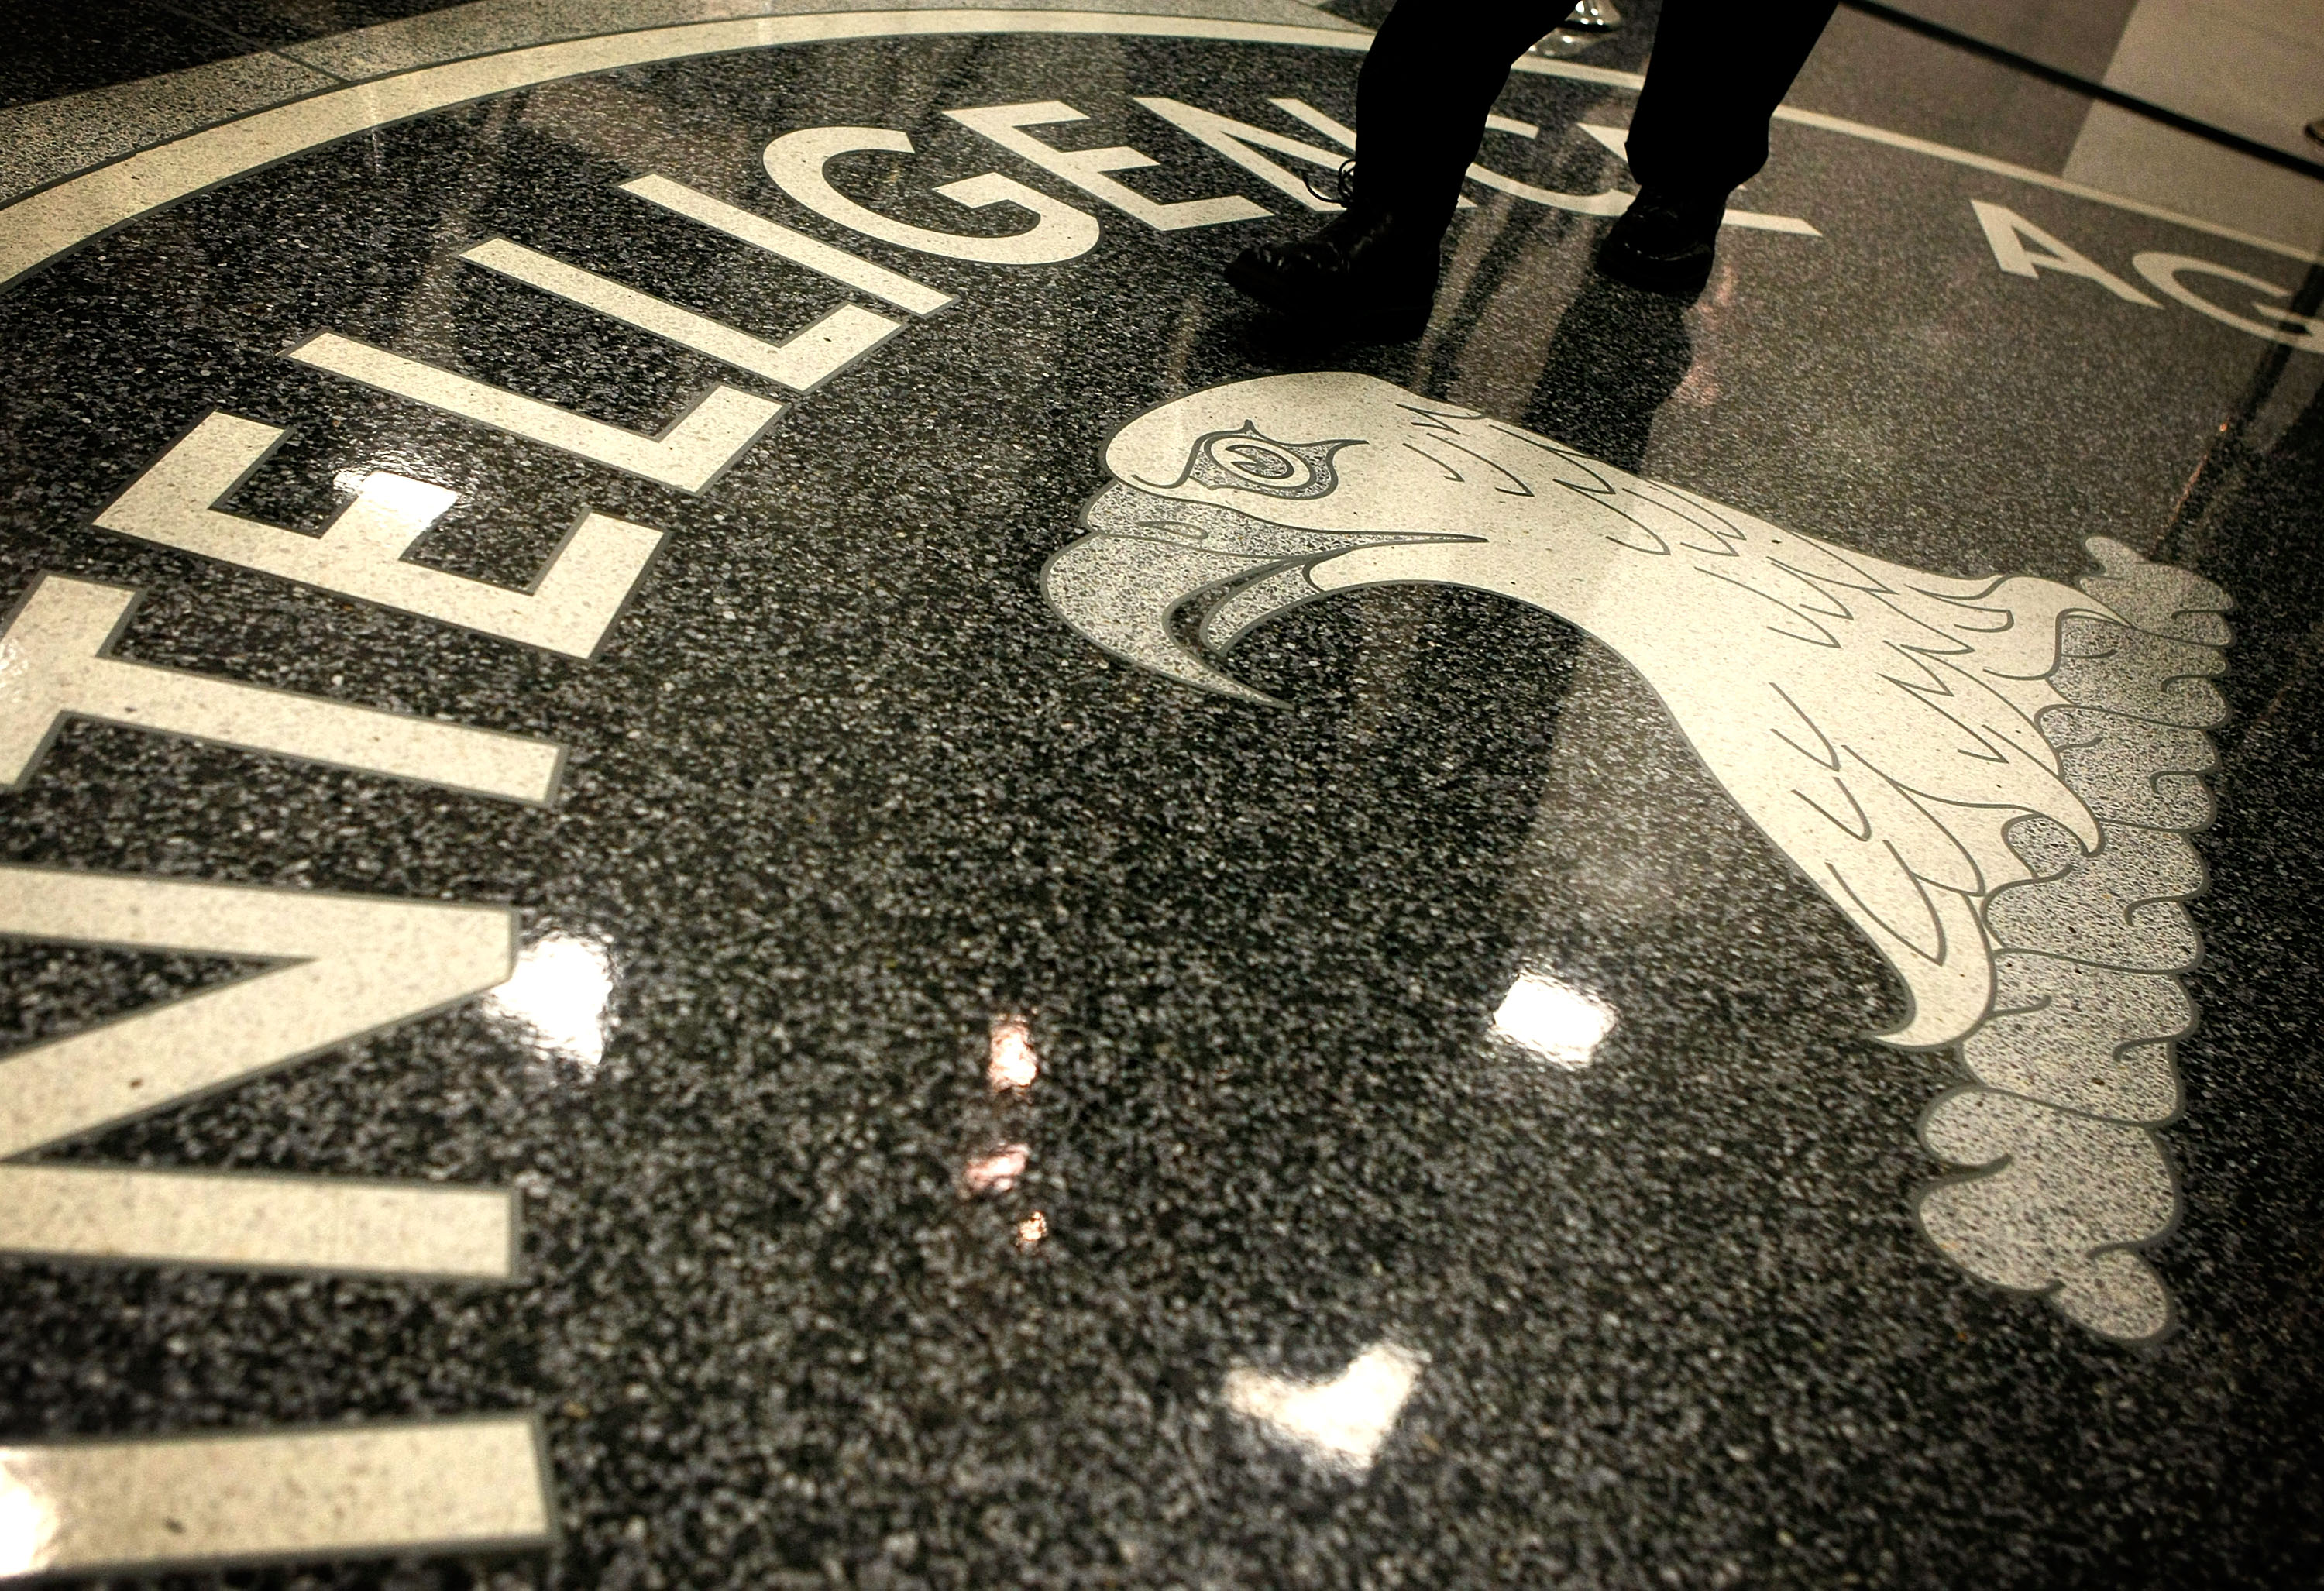 CIA Accidentally Leaves Explosive Material on Virginia School Bus